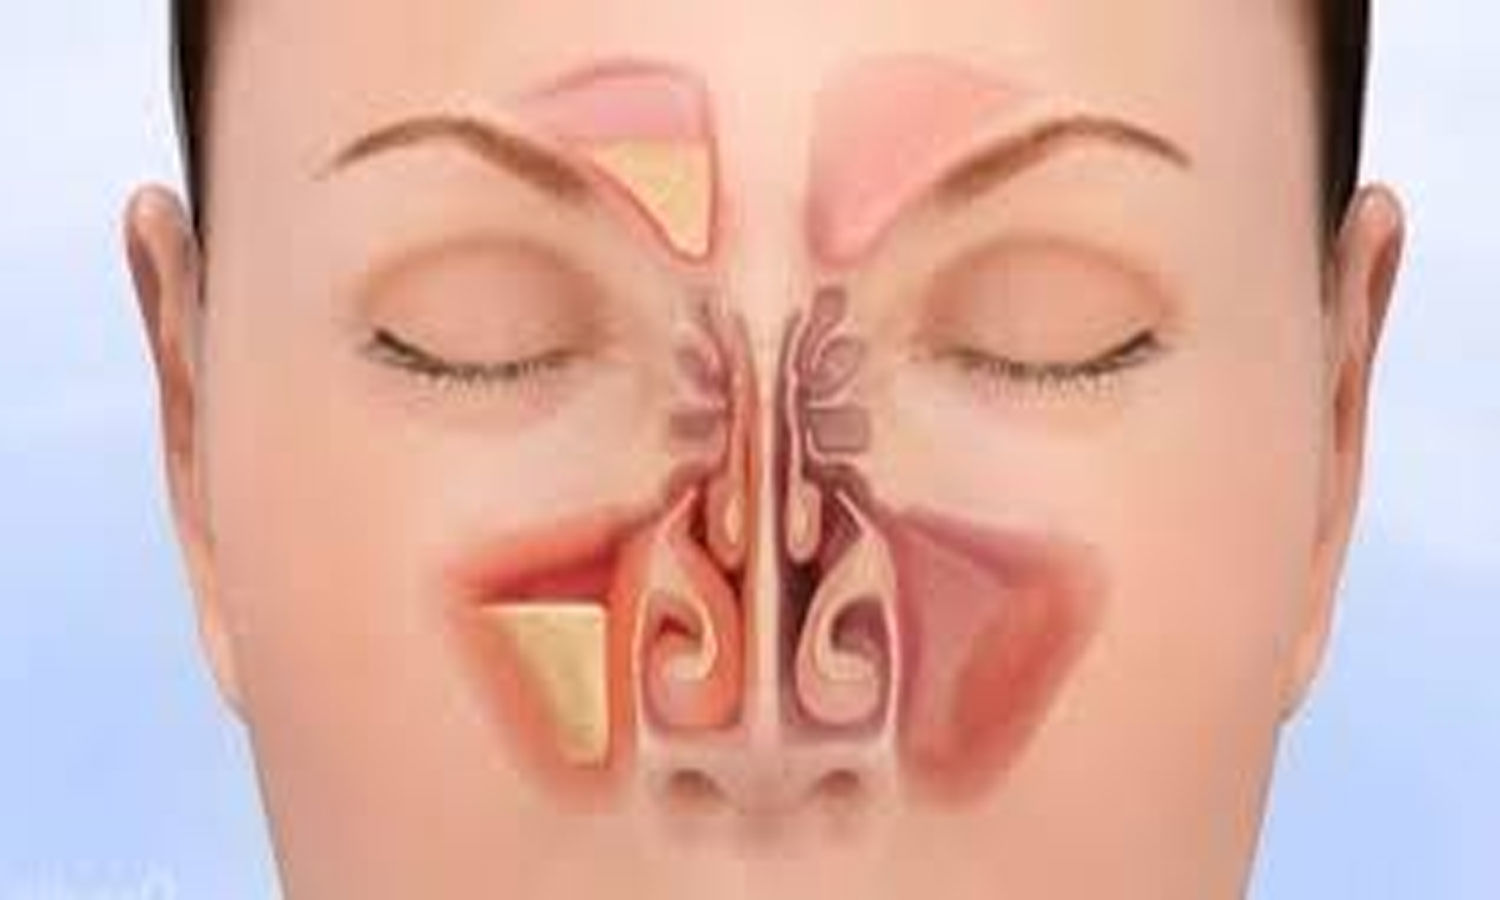 Experts list evidence-based recommendations for managing acute rhinosinusitis and nasal fractures